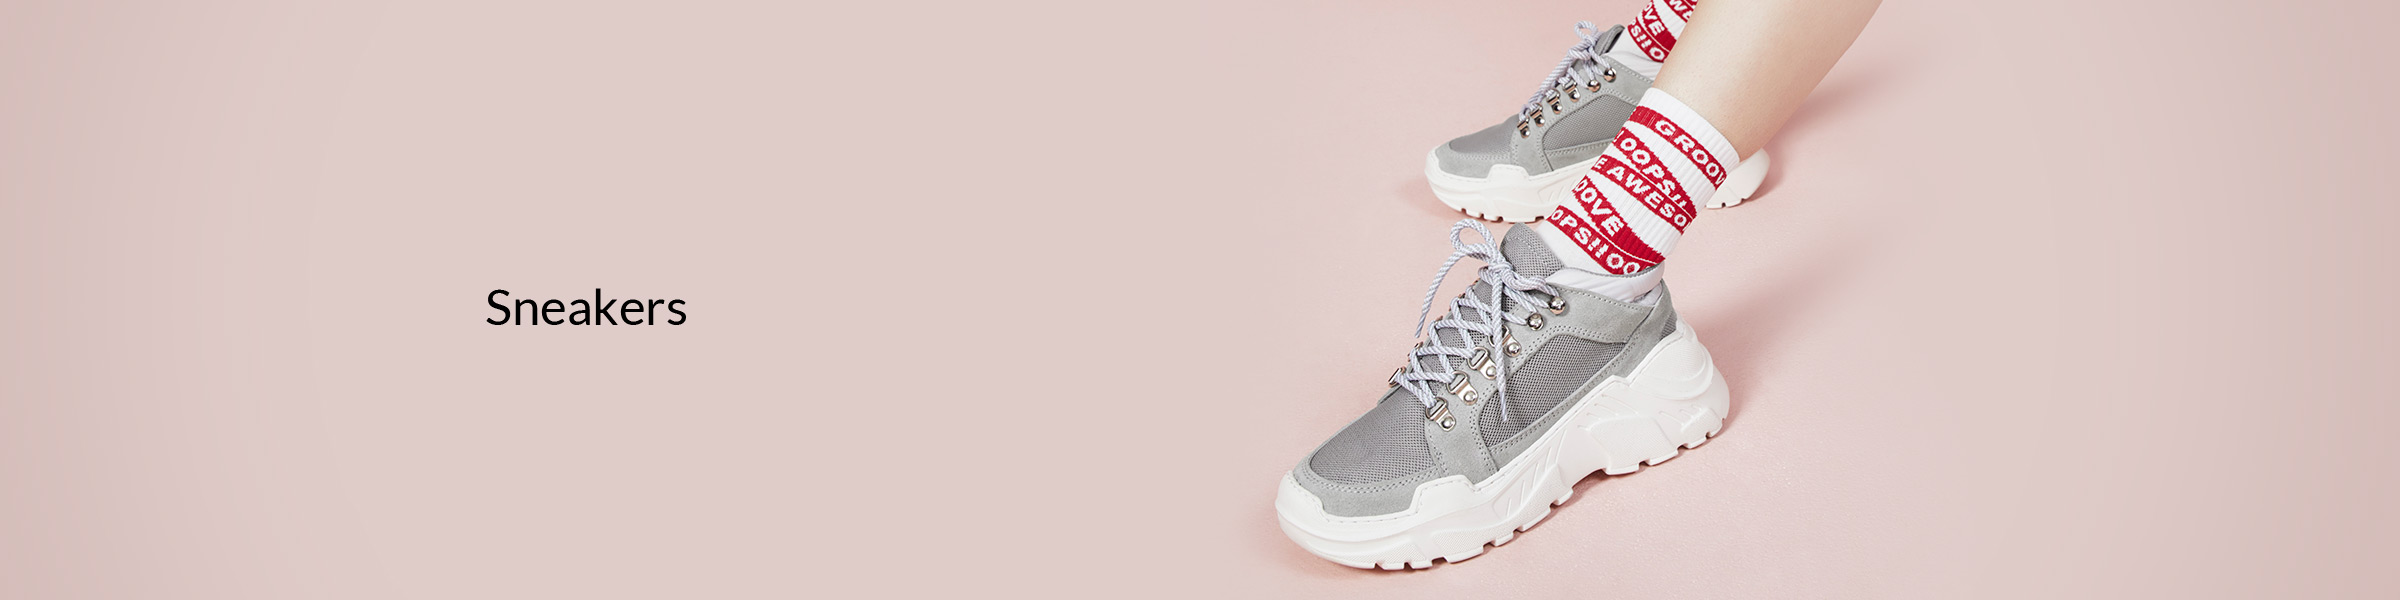 P19-TBGEN-FEMME-CHAUSSURES-Sneakers.psd